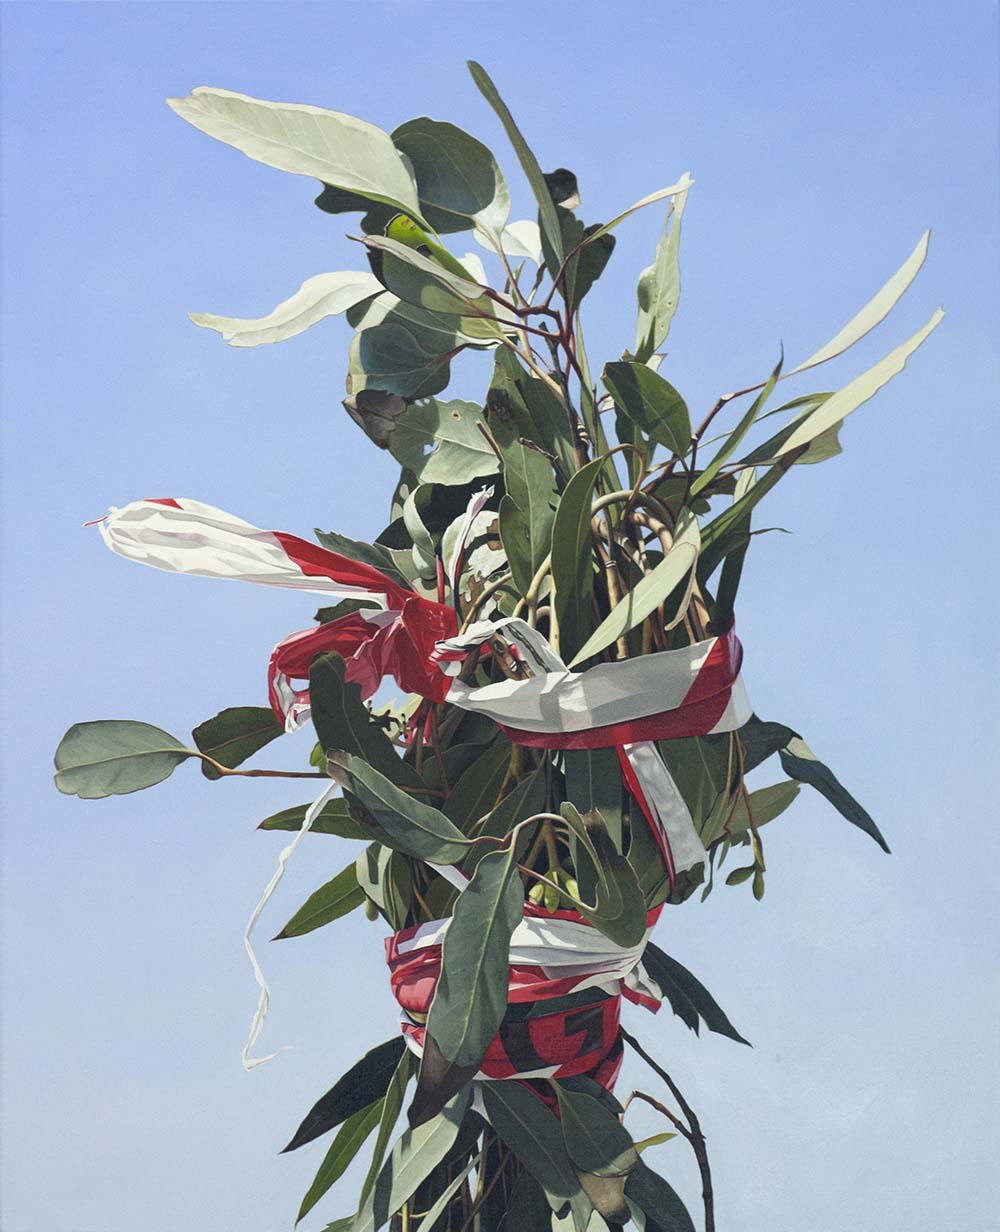 Juan Ford,Rocket Surgery 2010 oil on linen 76 x 61 cm The Seldon Robinson Collection, Melbourne